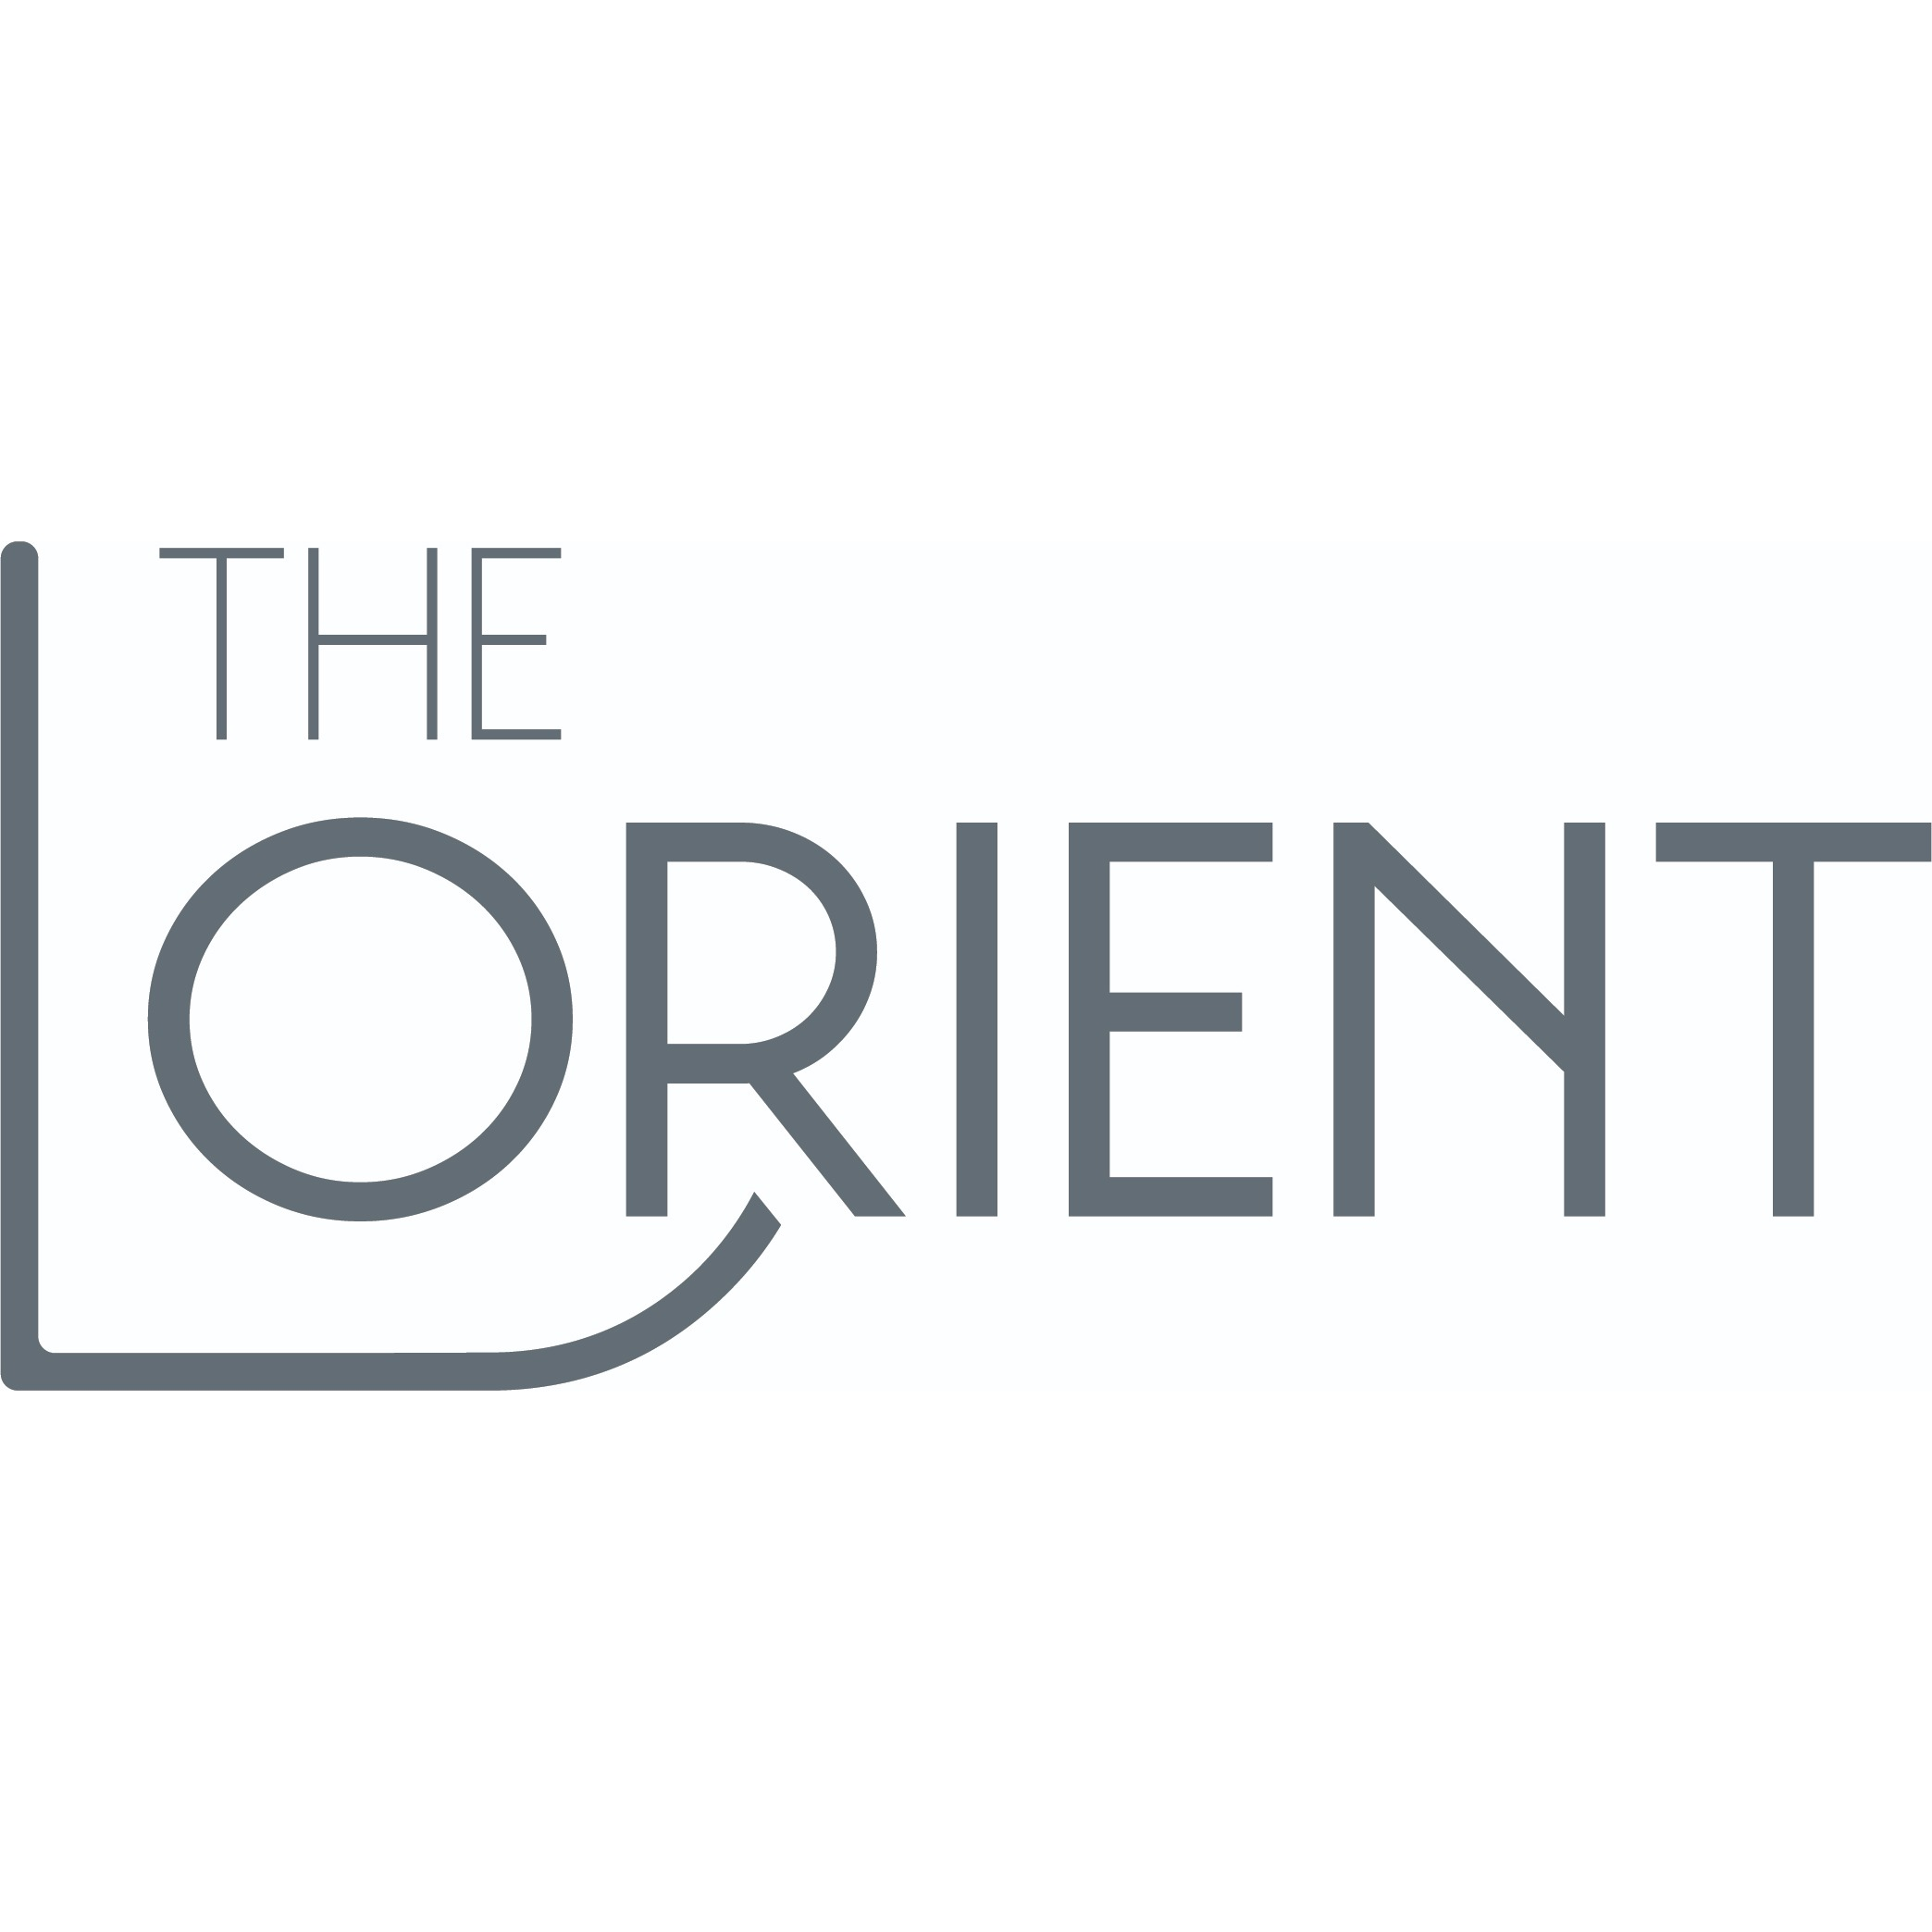 The Lorient